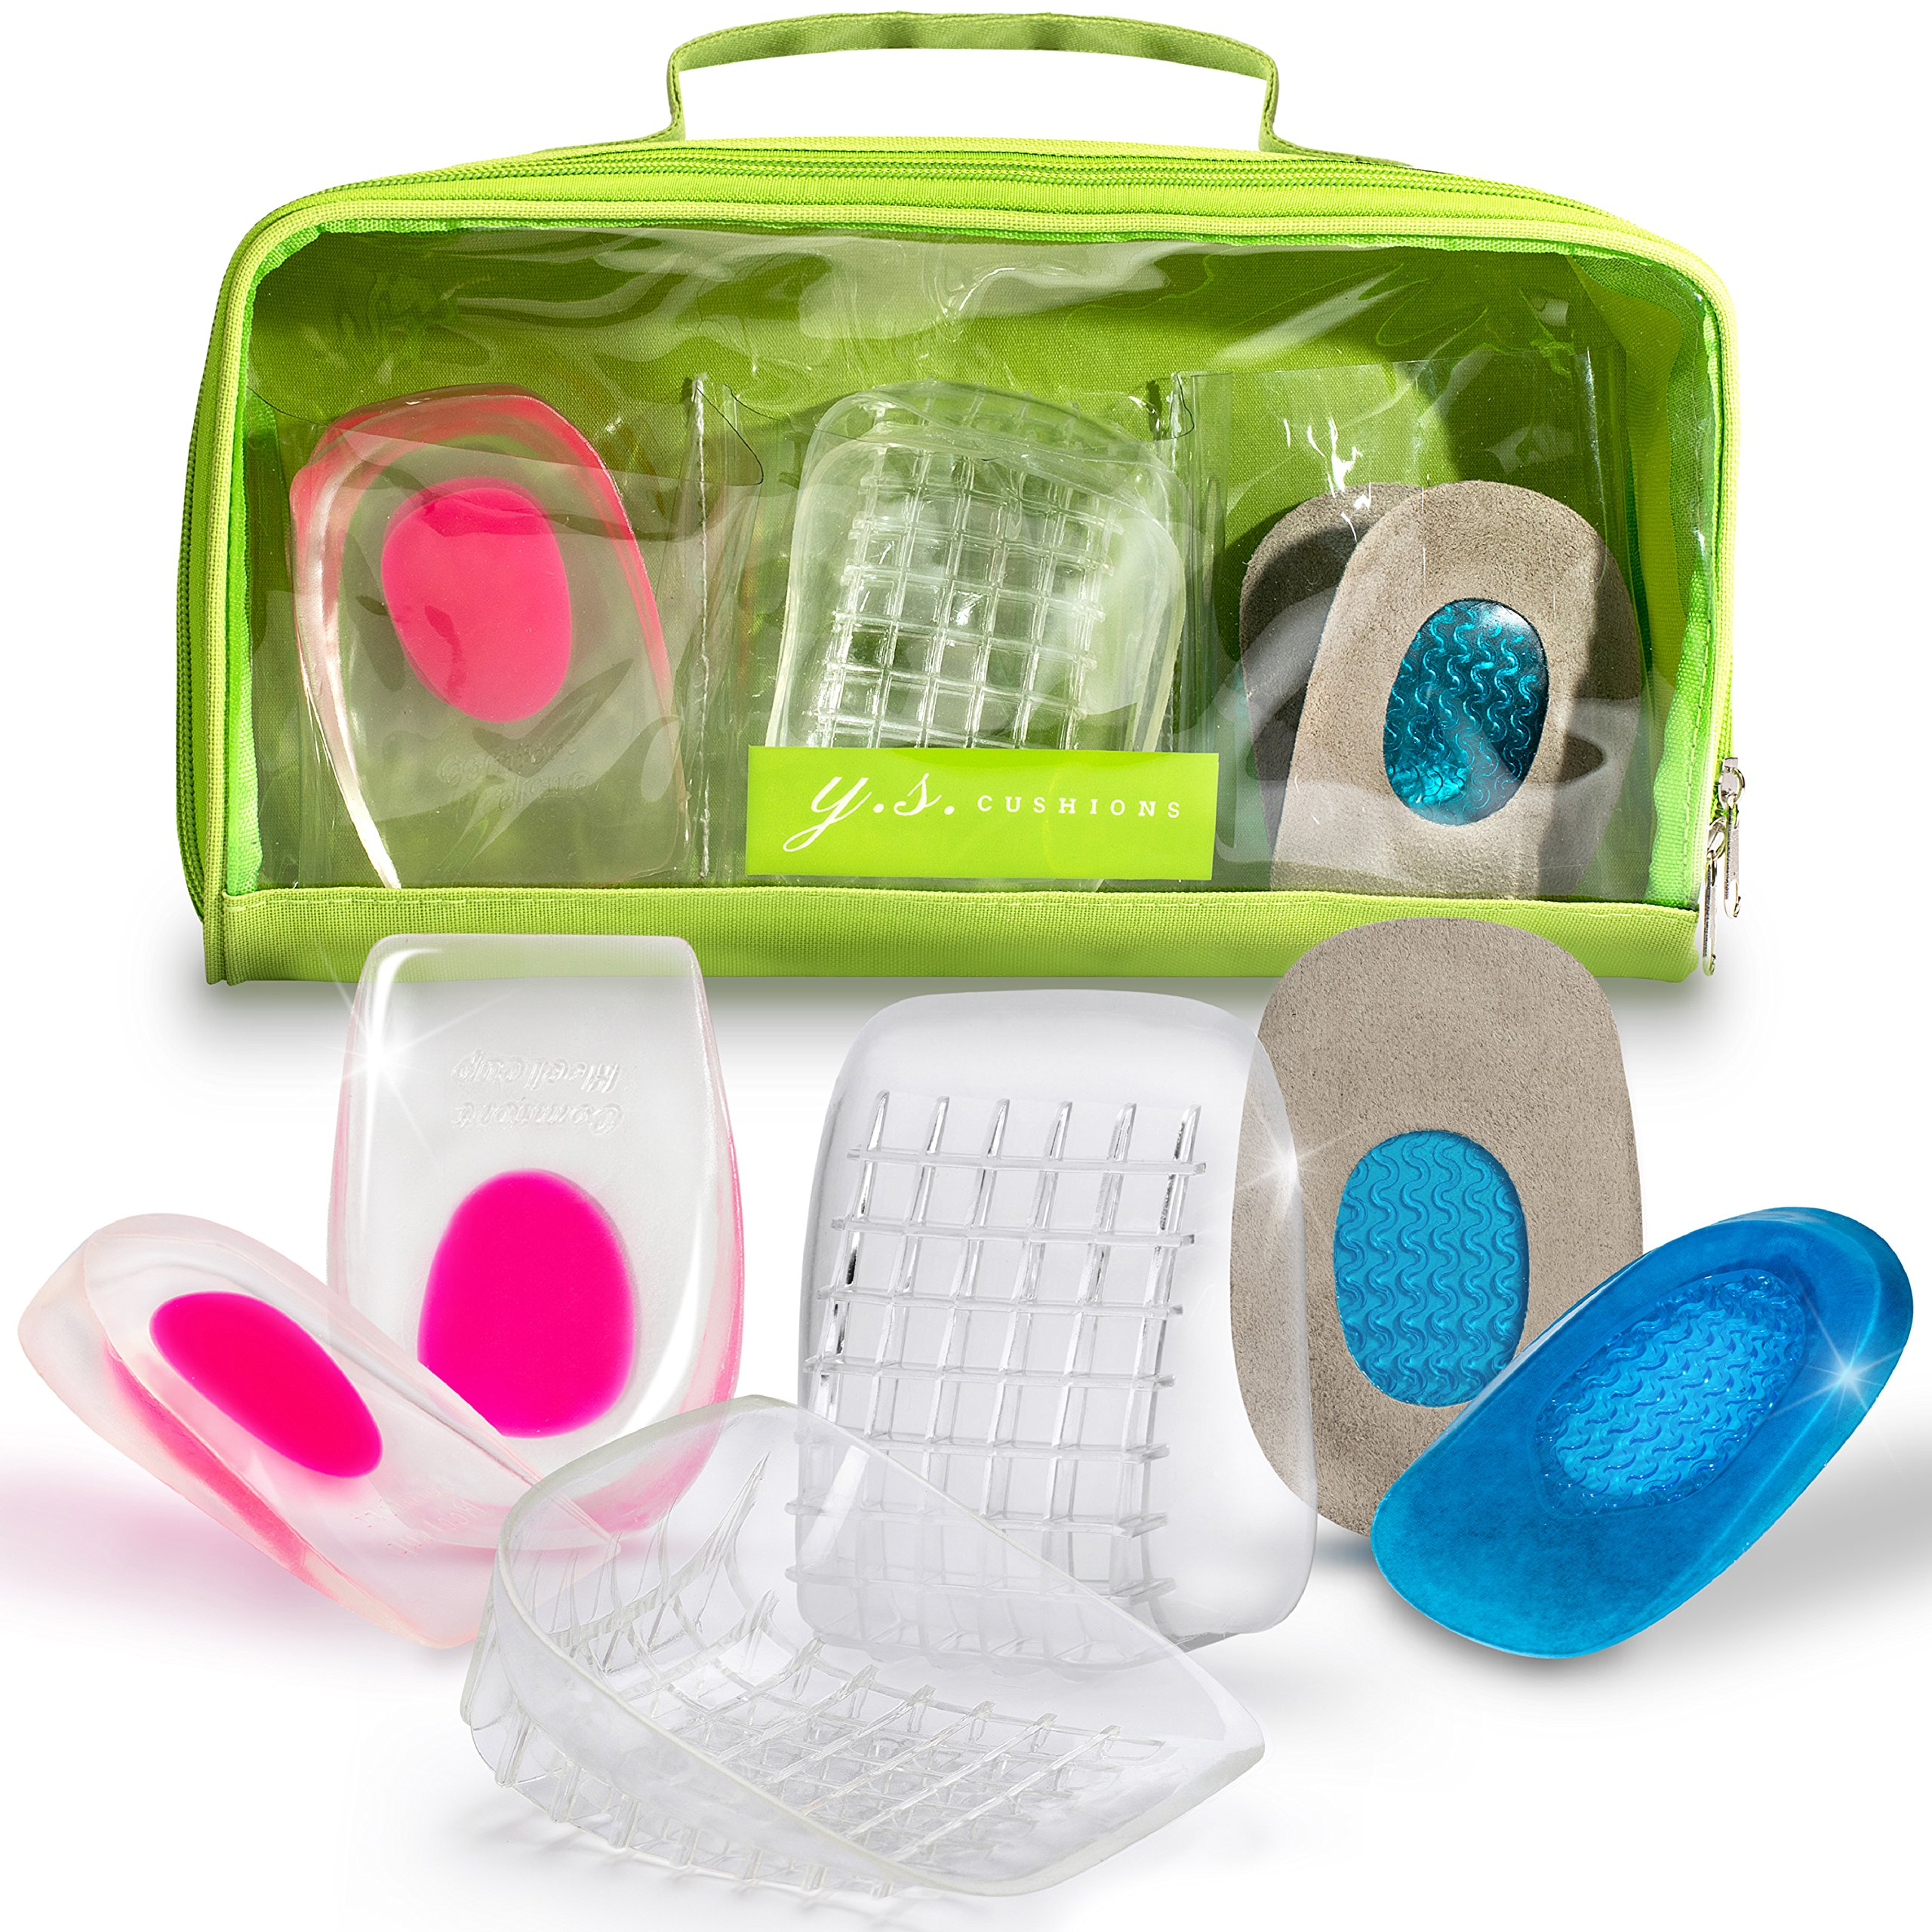 Useful Set of 3 Different Heel Pads for Plantar Fasciitis Support. Shoe Inserts for Relief of Pain from Heel Spurs. Excellent for Training, Fitness, Running or Tennis games.